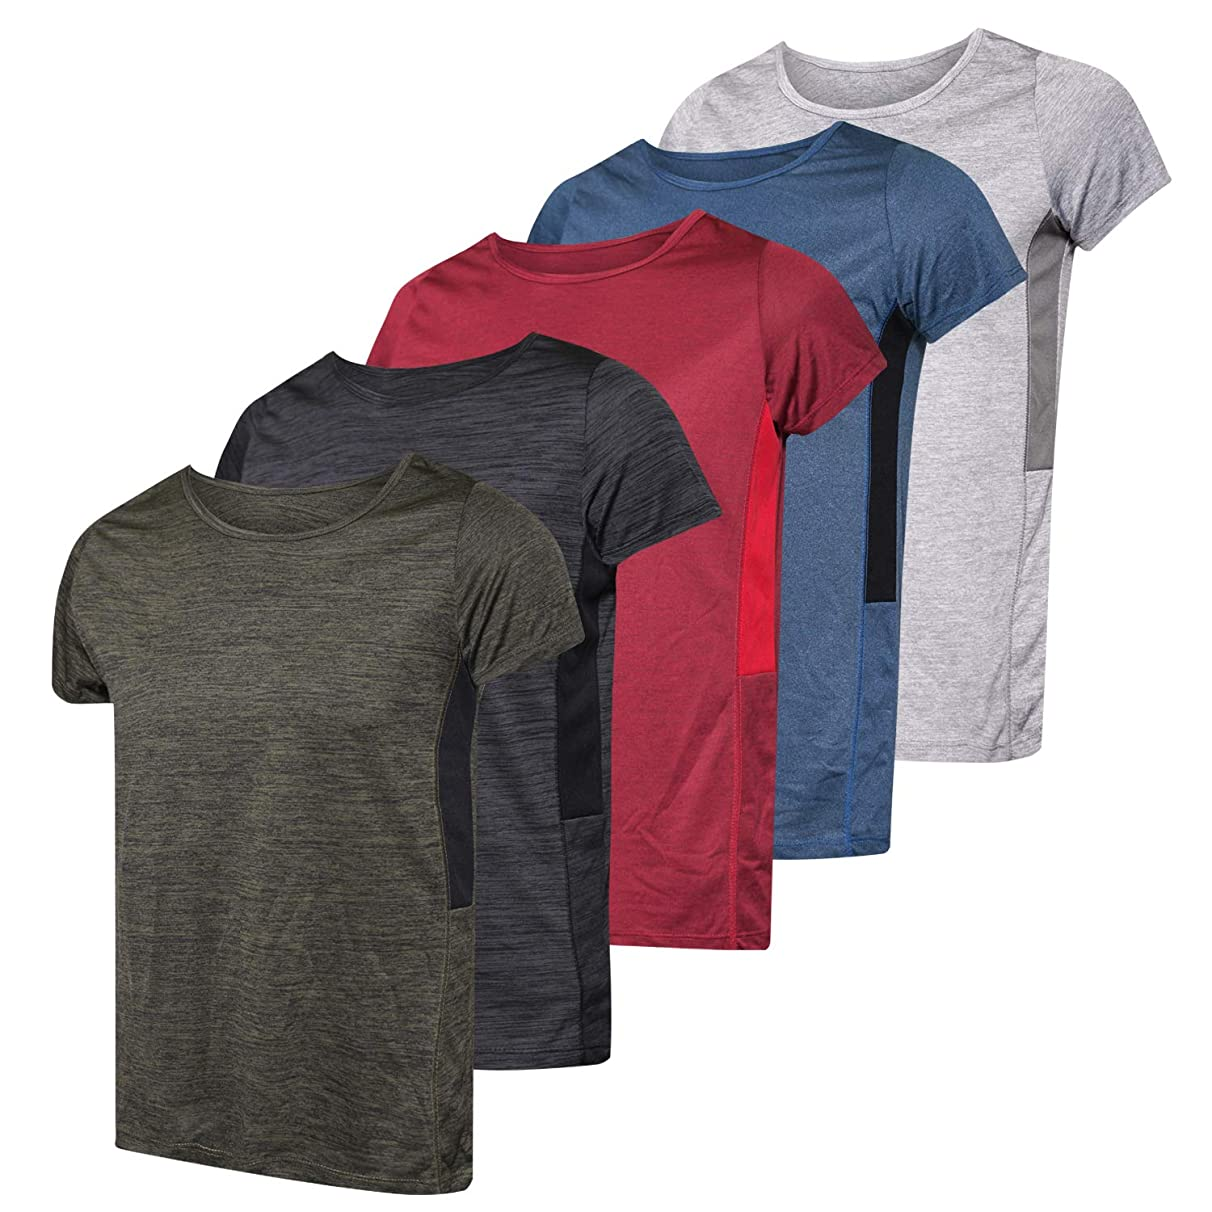 5-Pack Women's Short-Sleeve Crew Neck T-Shirt Dry-Fit Athletic Performance Yoga Activewear Workout Top